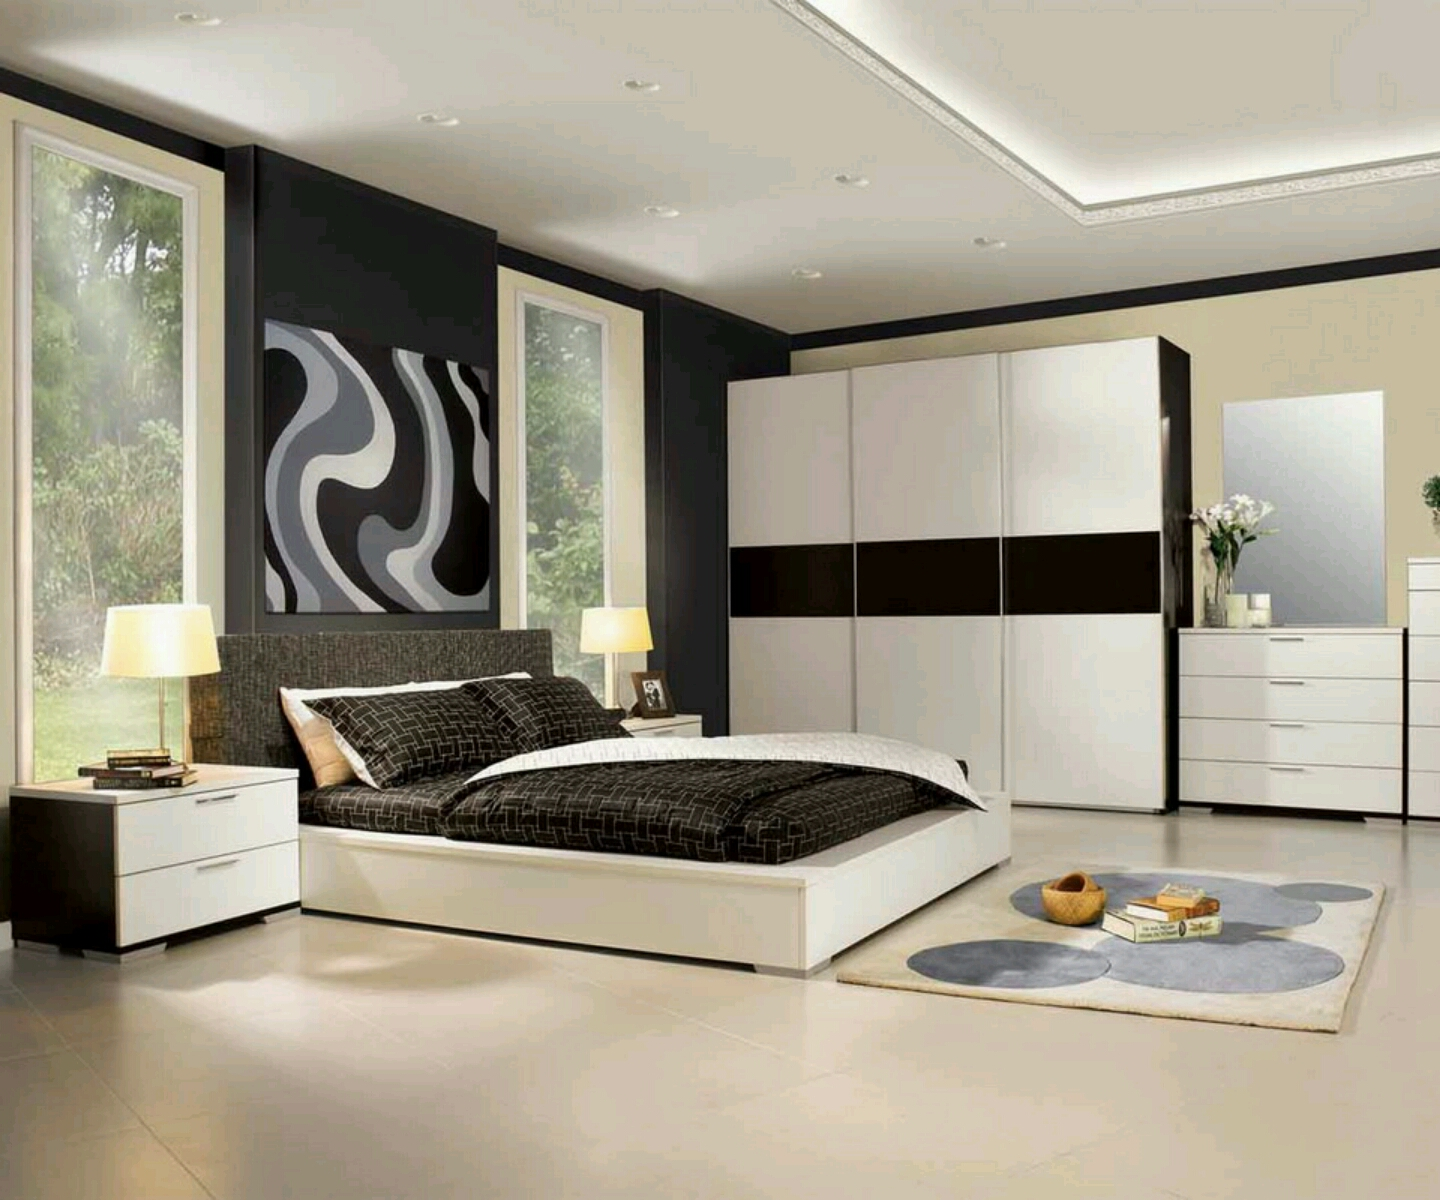 Modern luxury bedroom furniture designs ideas vintage romantic home - Luxury bedroom design ...